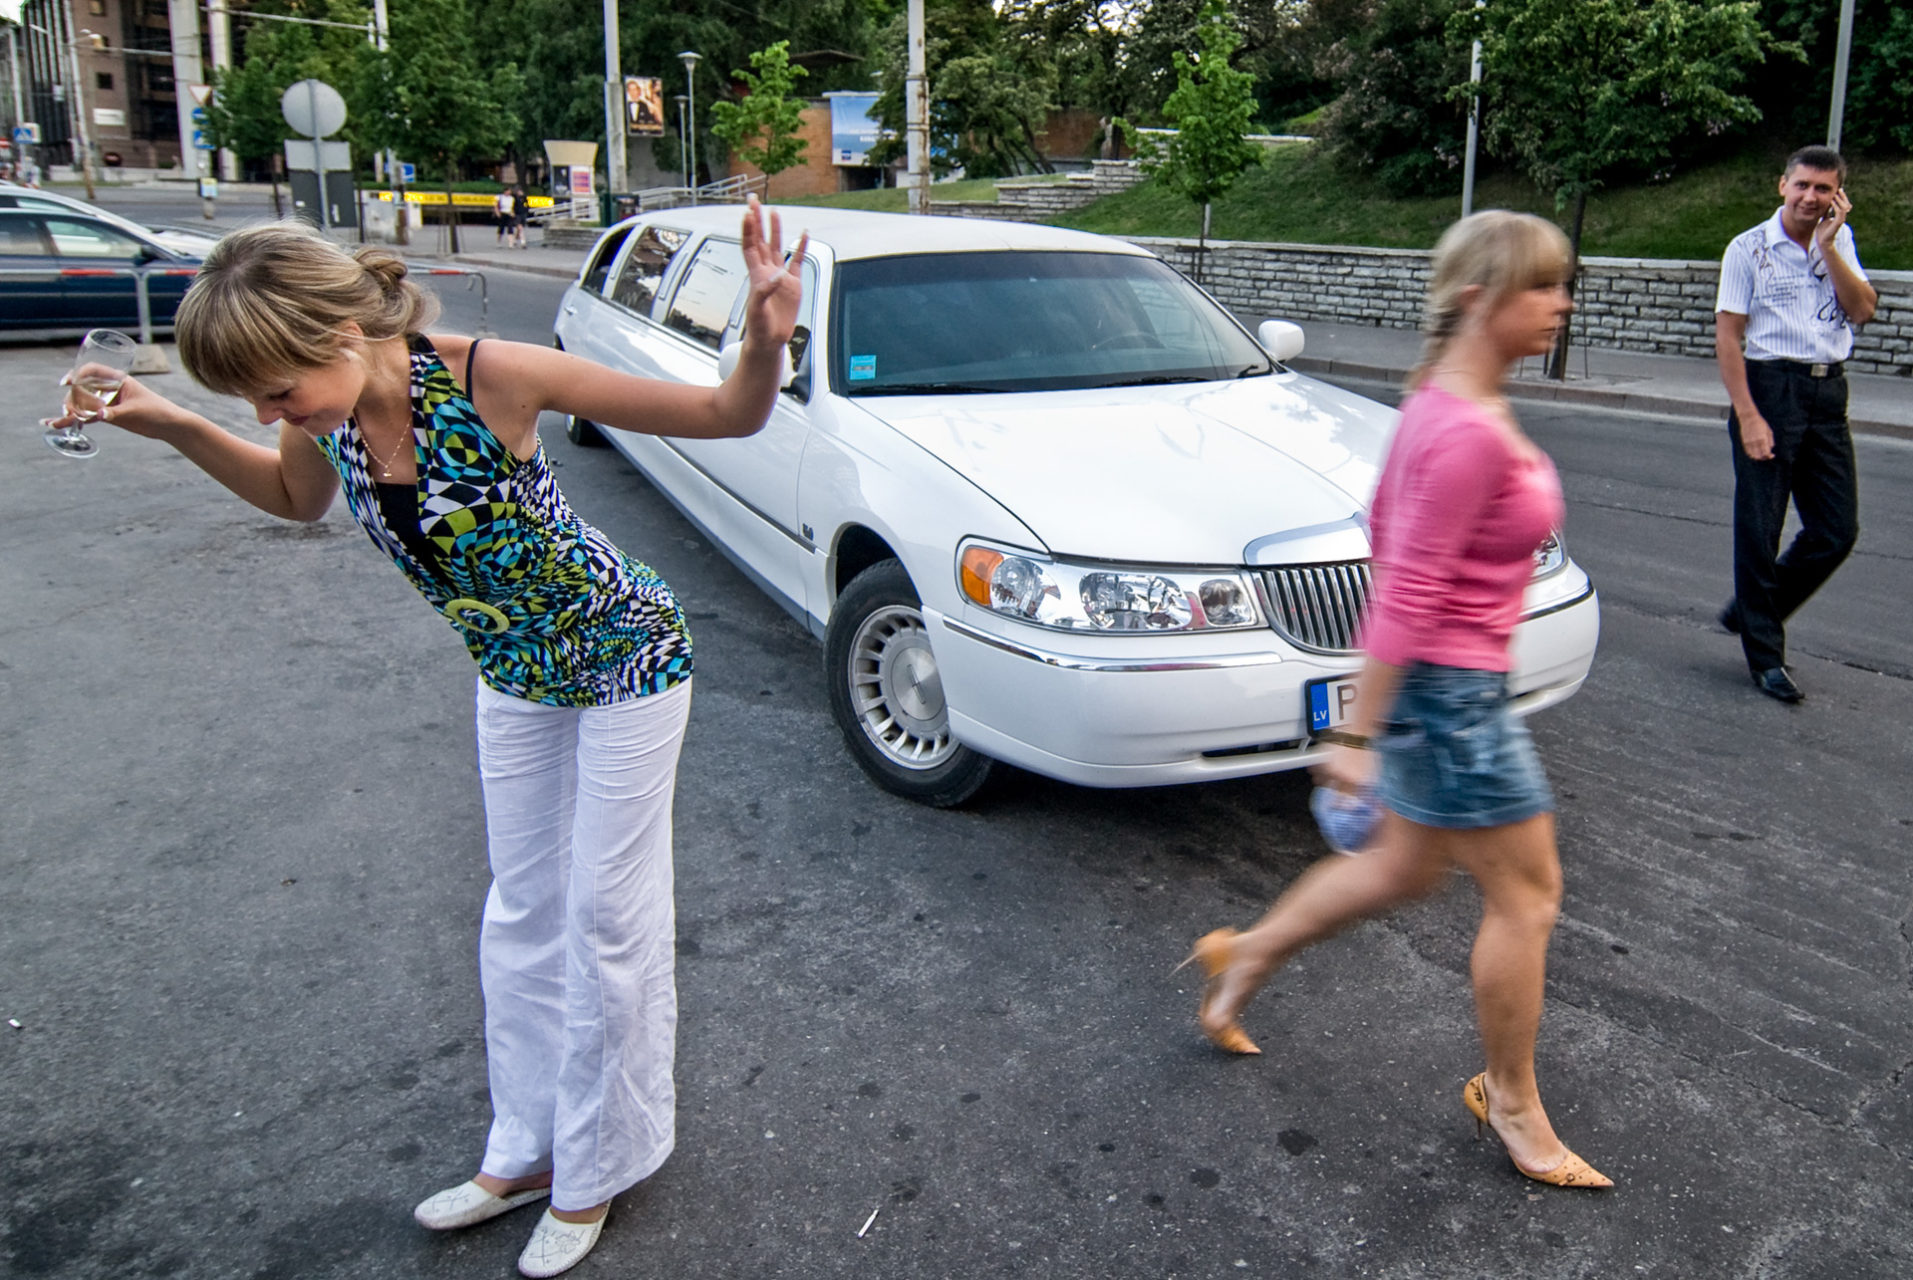 Estonia, Tallinn 2007. Going out with a limo